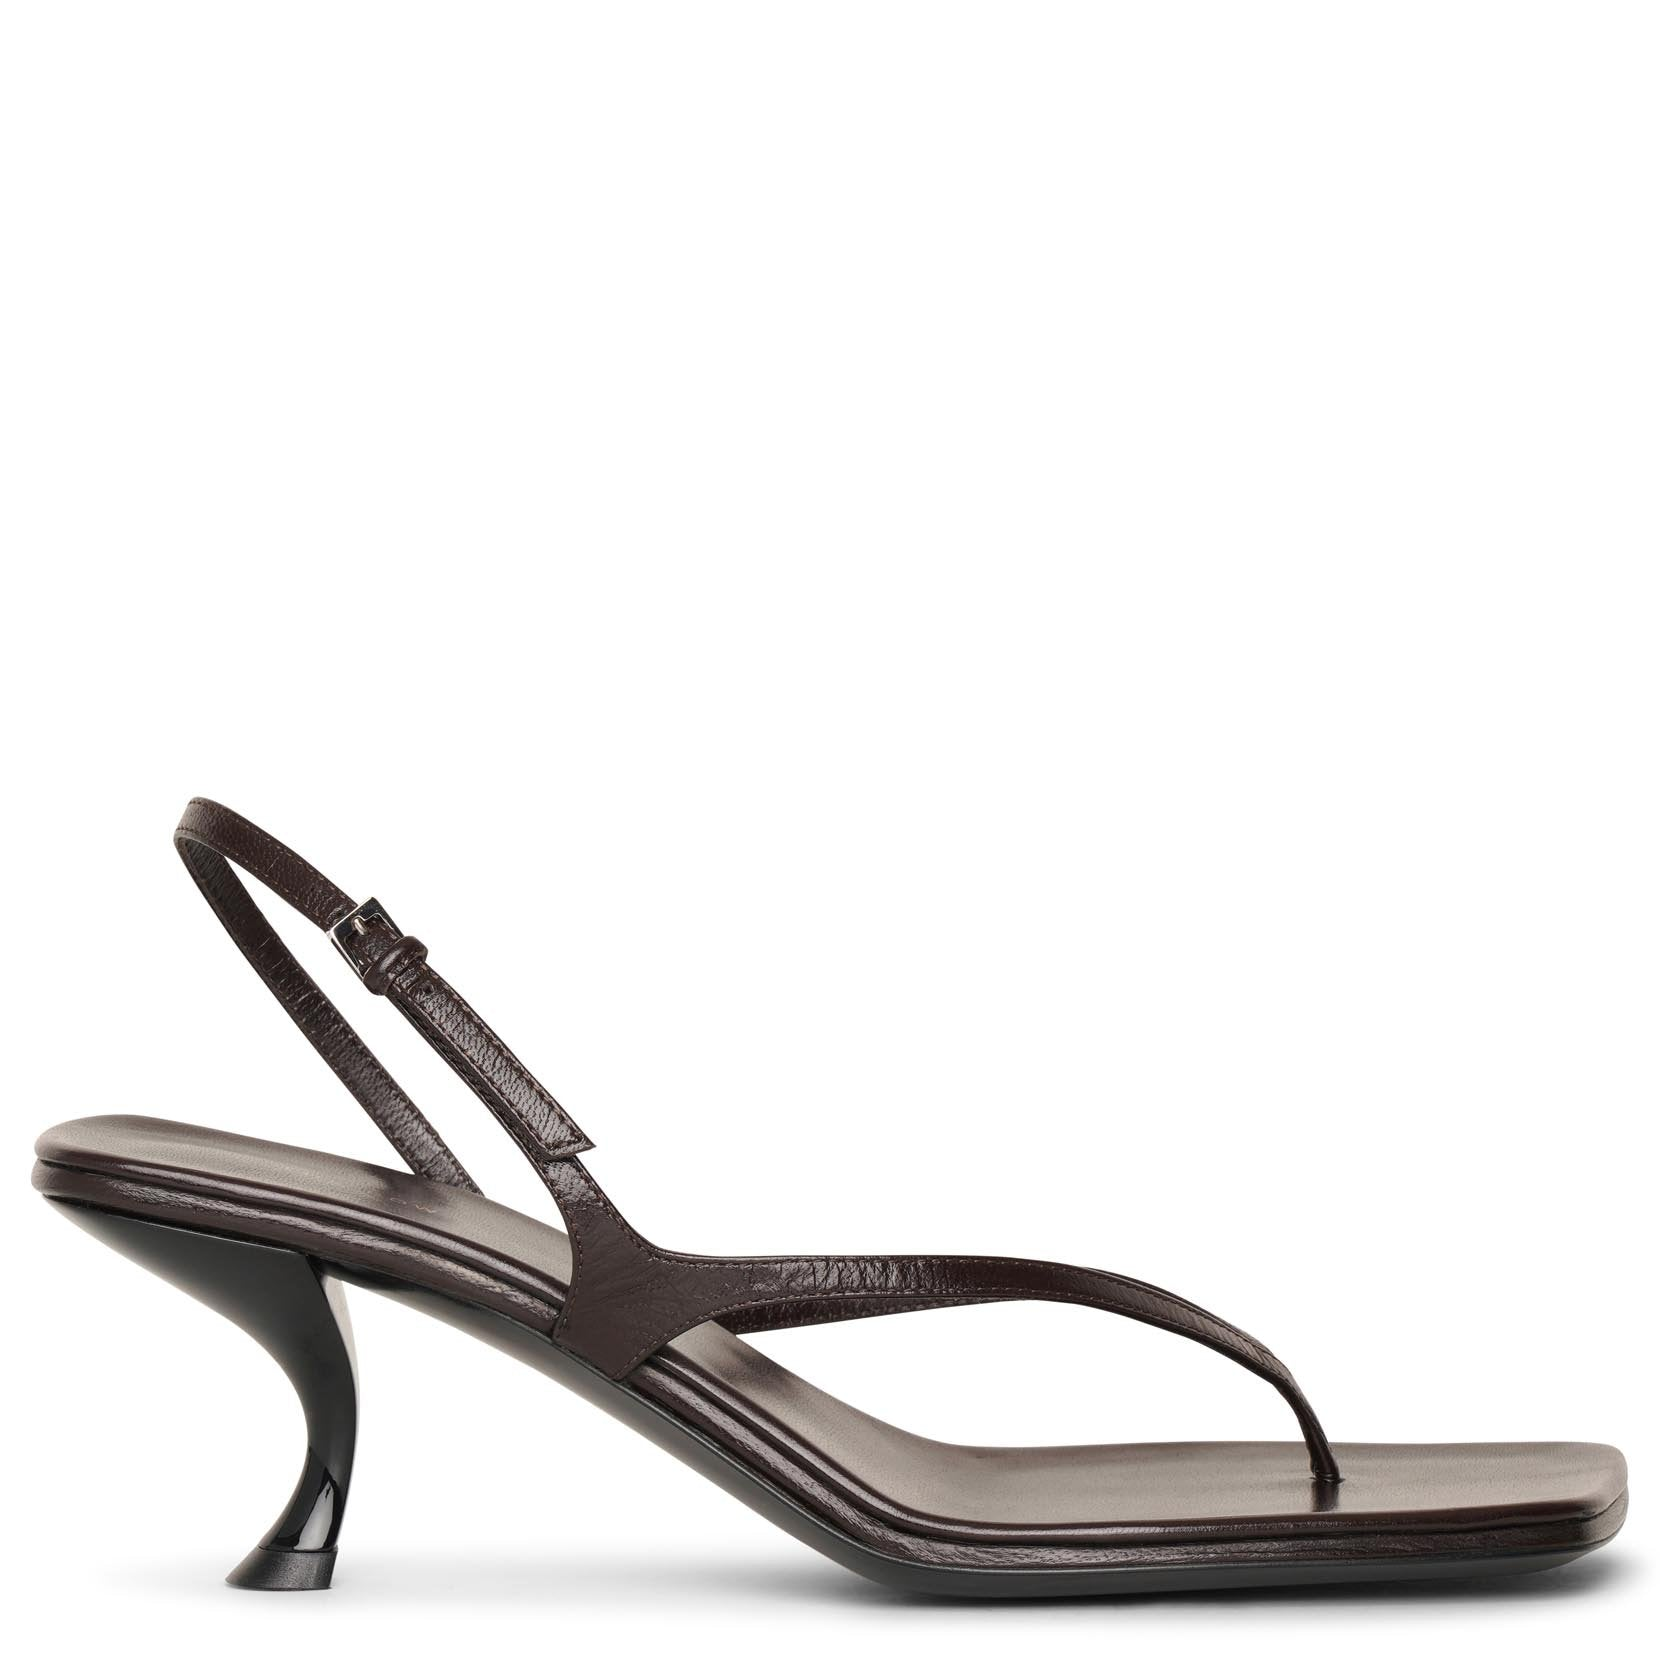 The Row Leathers Constance mocha leather sandals